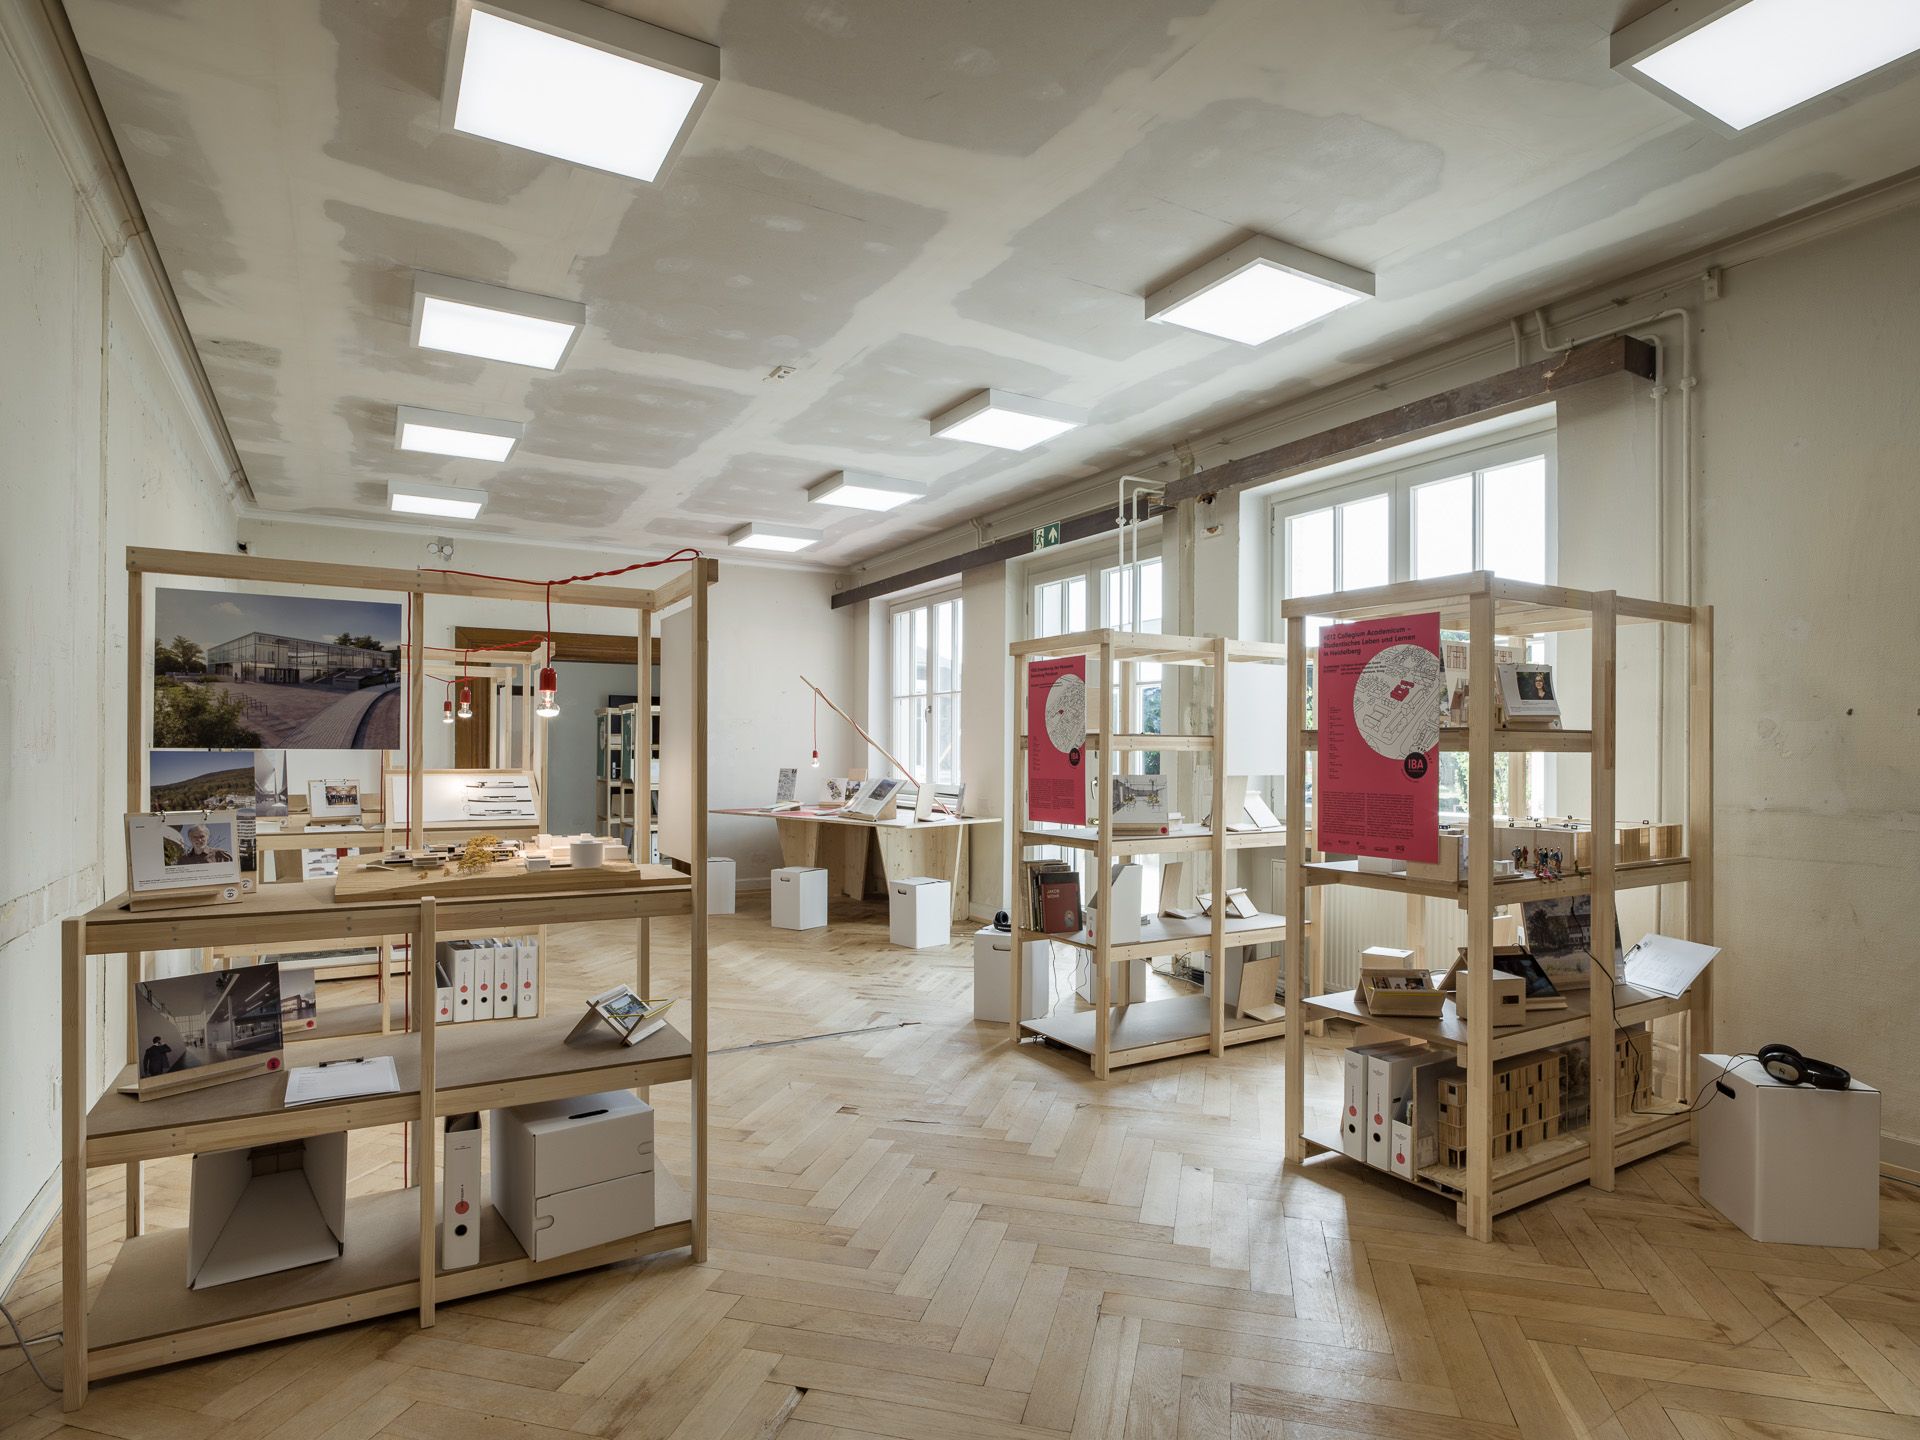 Project / Candidate exhibition rooms - © Thilo Ross | IBA Heidelberg